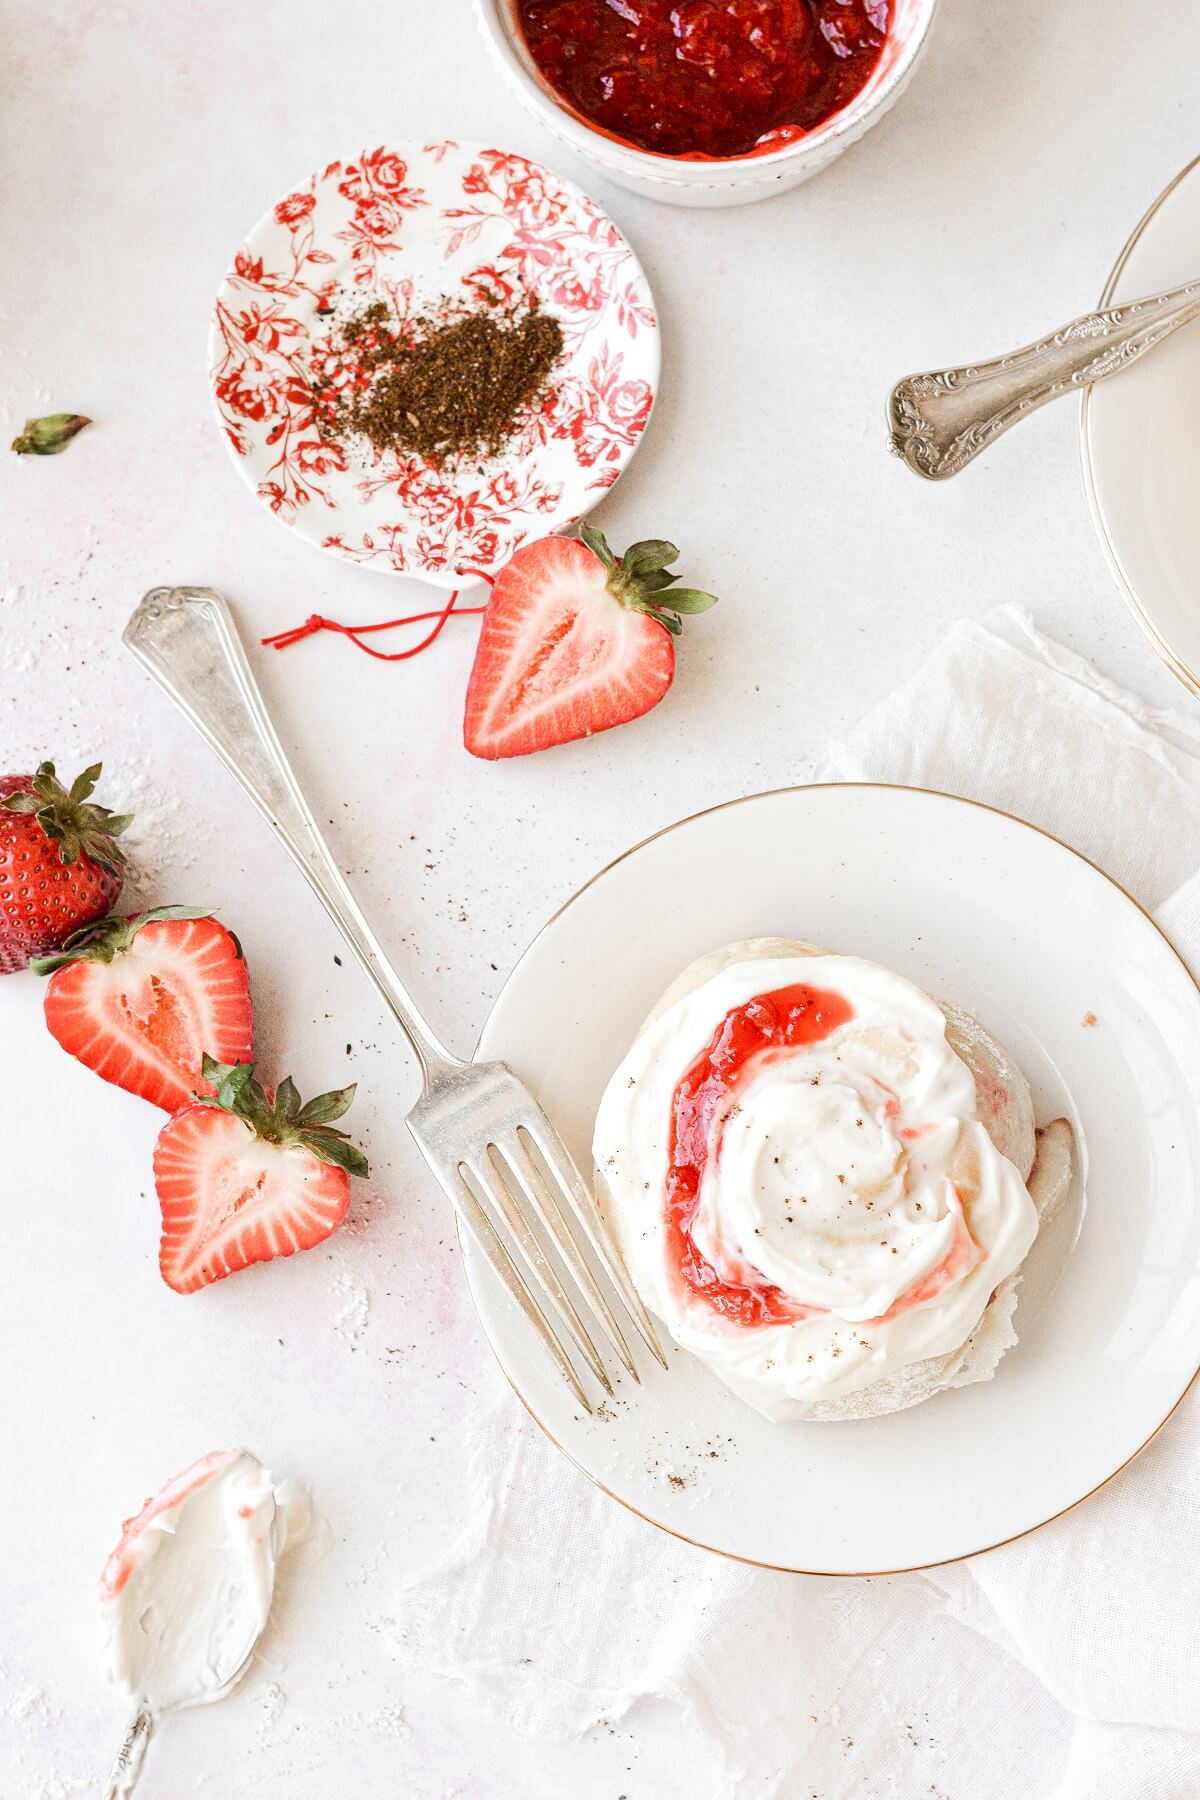 A strawberry roll with cream cheese frosting.